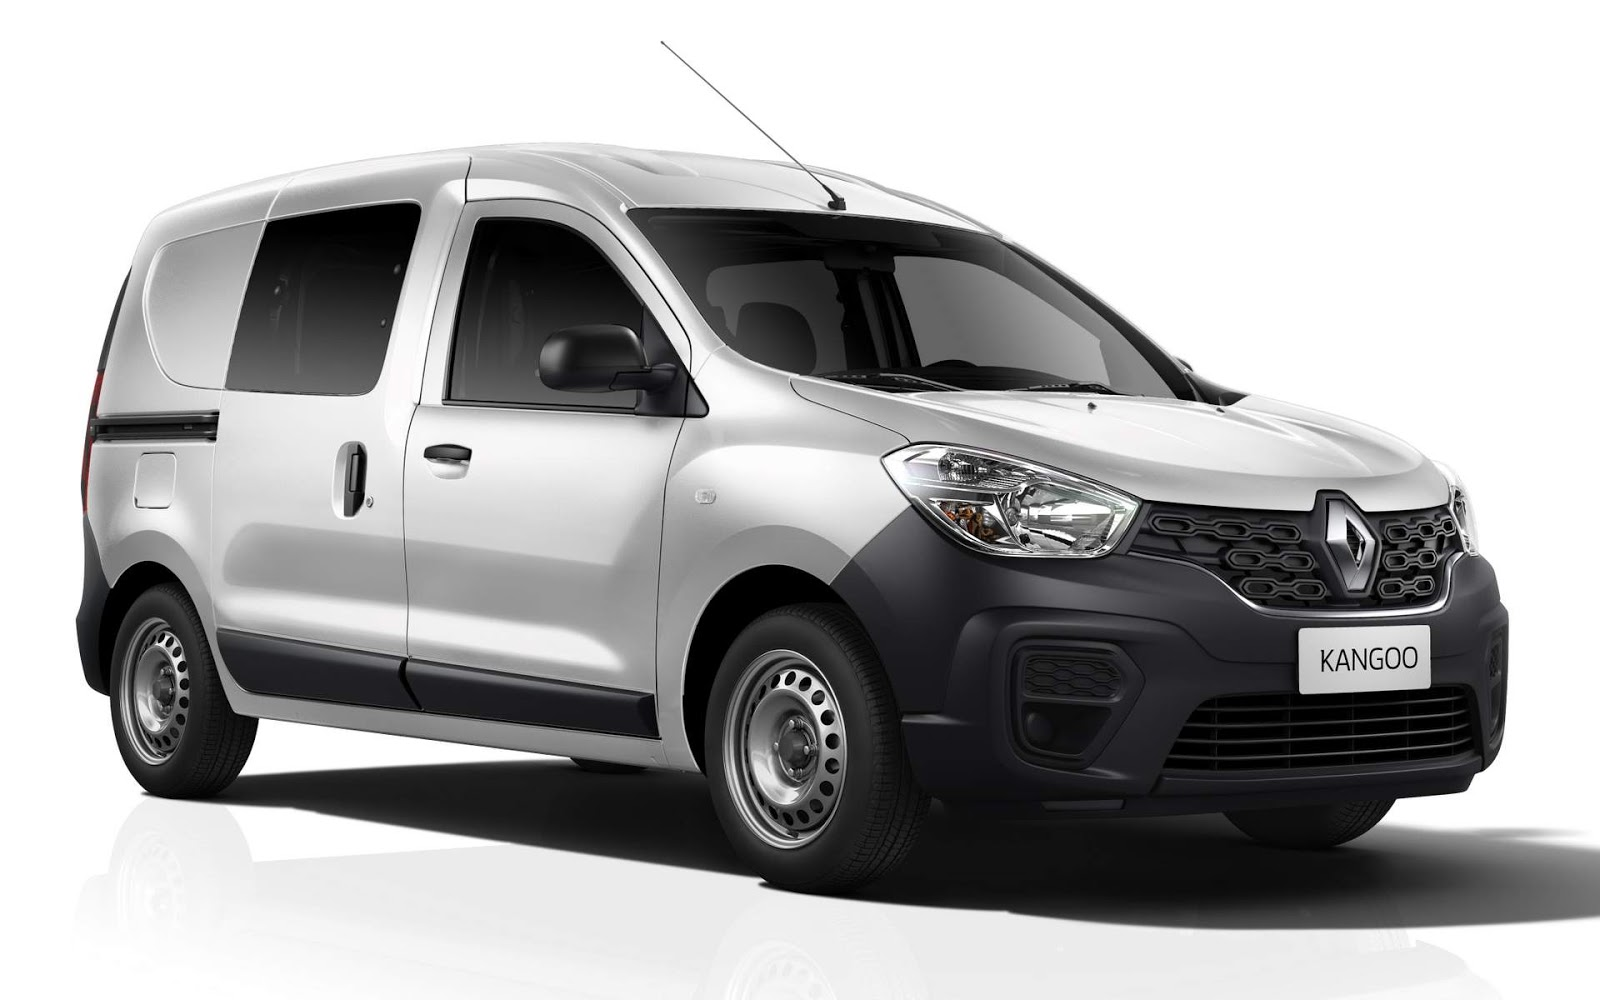 renault lan a kangoo nas vers es stepway zen e life car blog br. Black Bedroom Furniture Sets. Home Design Ideas